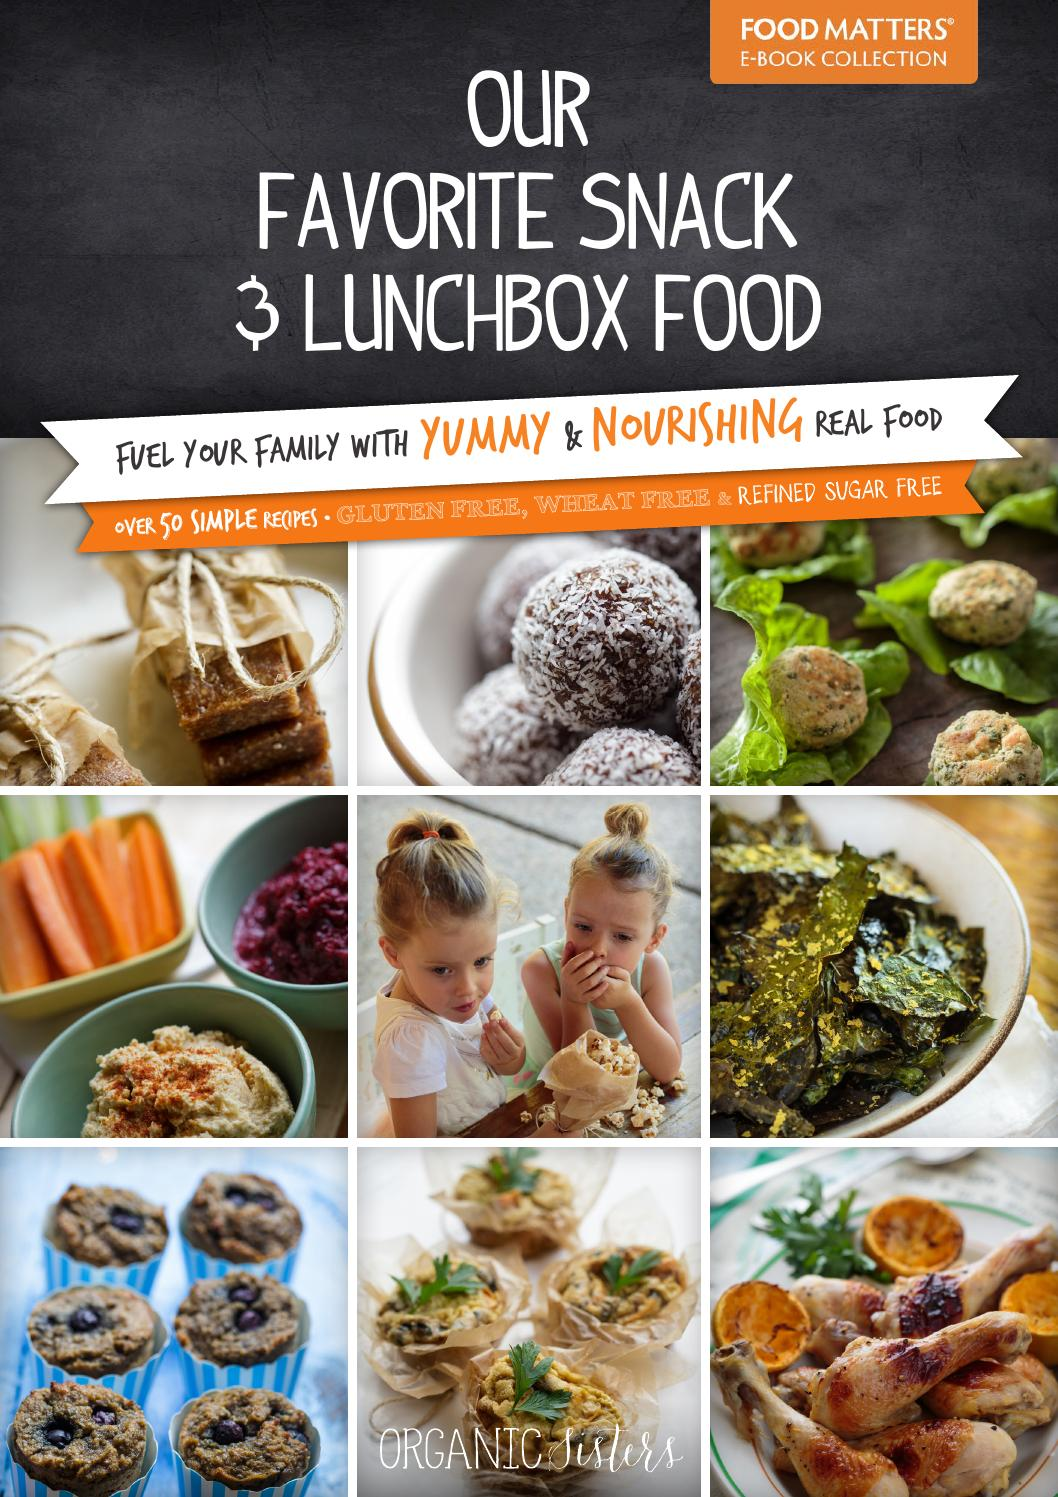 Organic Sisters Our Favourite Snack Lunchbox Food Preview By Food Matters Issuu